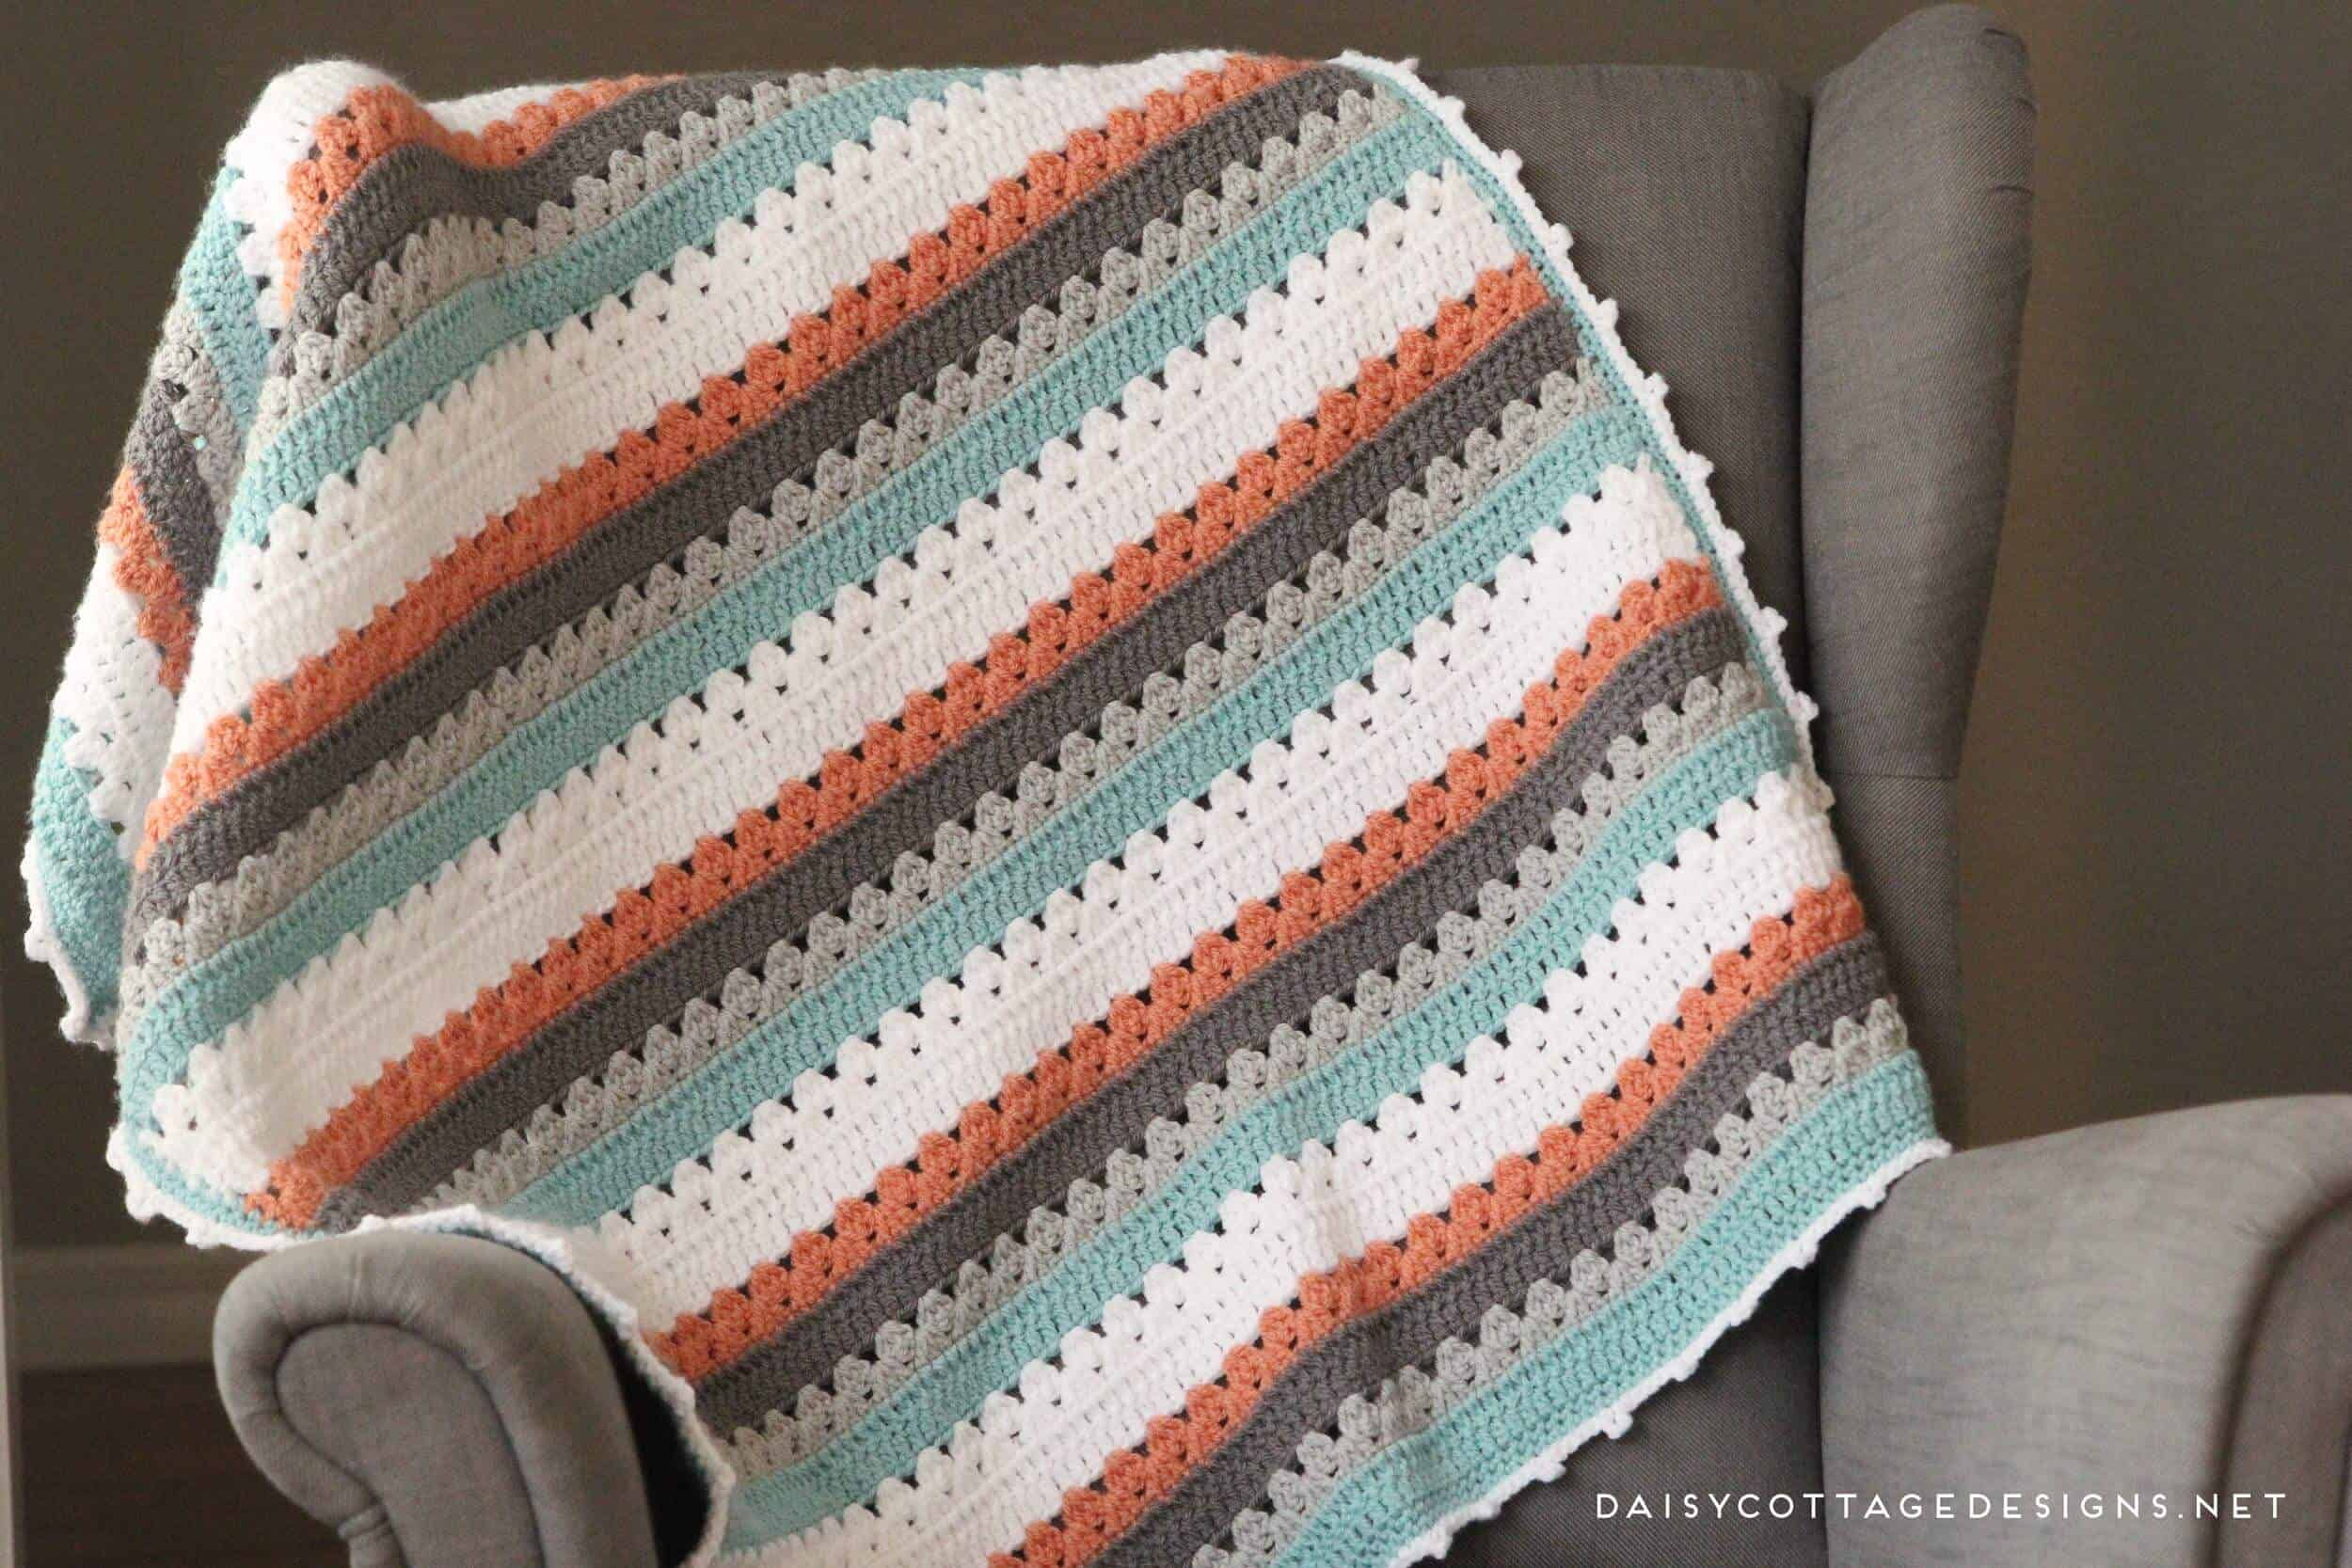 Use this blanket crochet pattern from Daisy Cottage Designs to create a beautiful afghan in any color way. | free crochet pattern, easy crochet pattern, free blanket crochet pattern, granny stripe crochet pattern